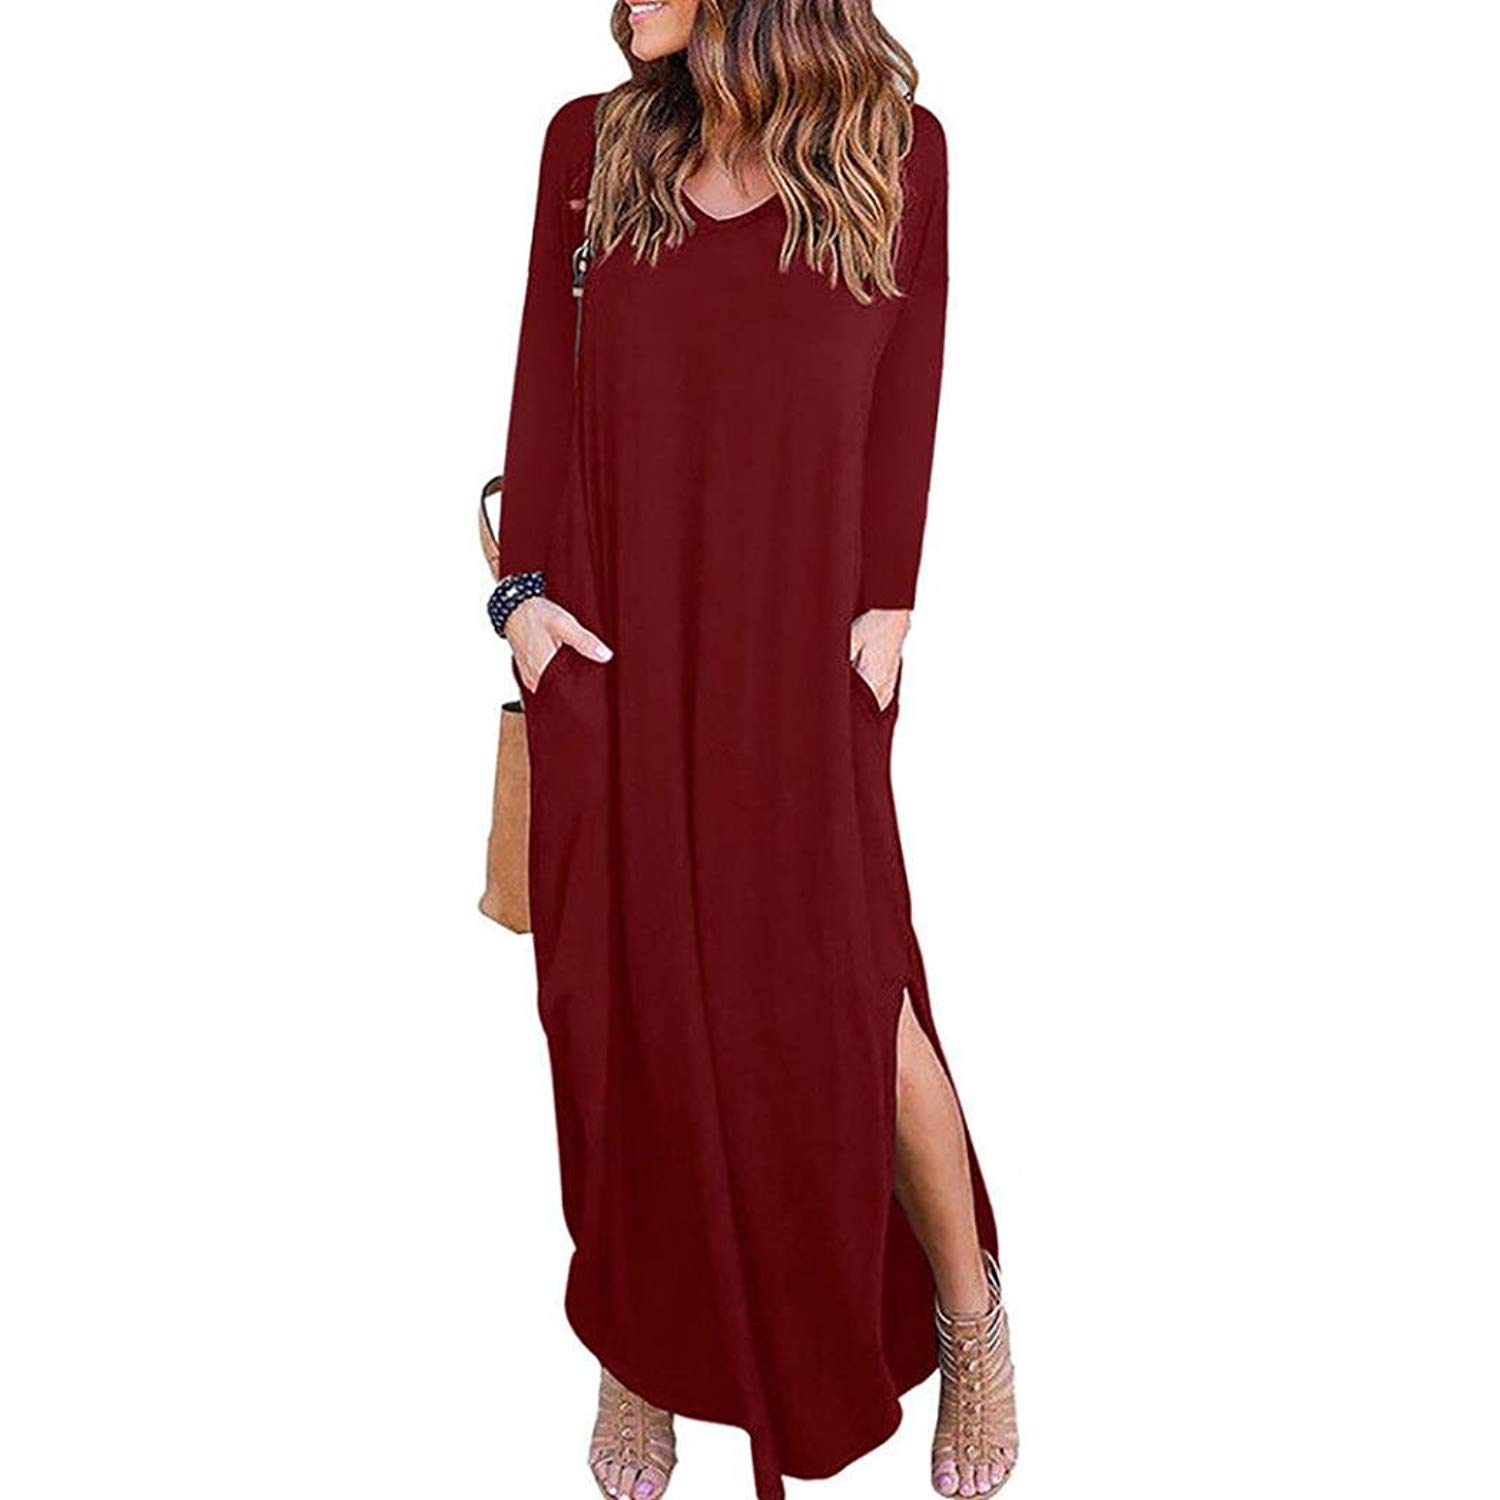 d7de4b40bd9 Get Quotations · Howstar Women s Long Sleeve Maxi Dress with Pockets Solid  Color Loose Casual Long Dresses